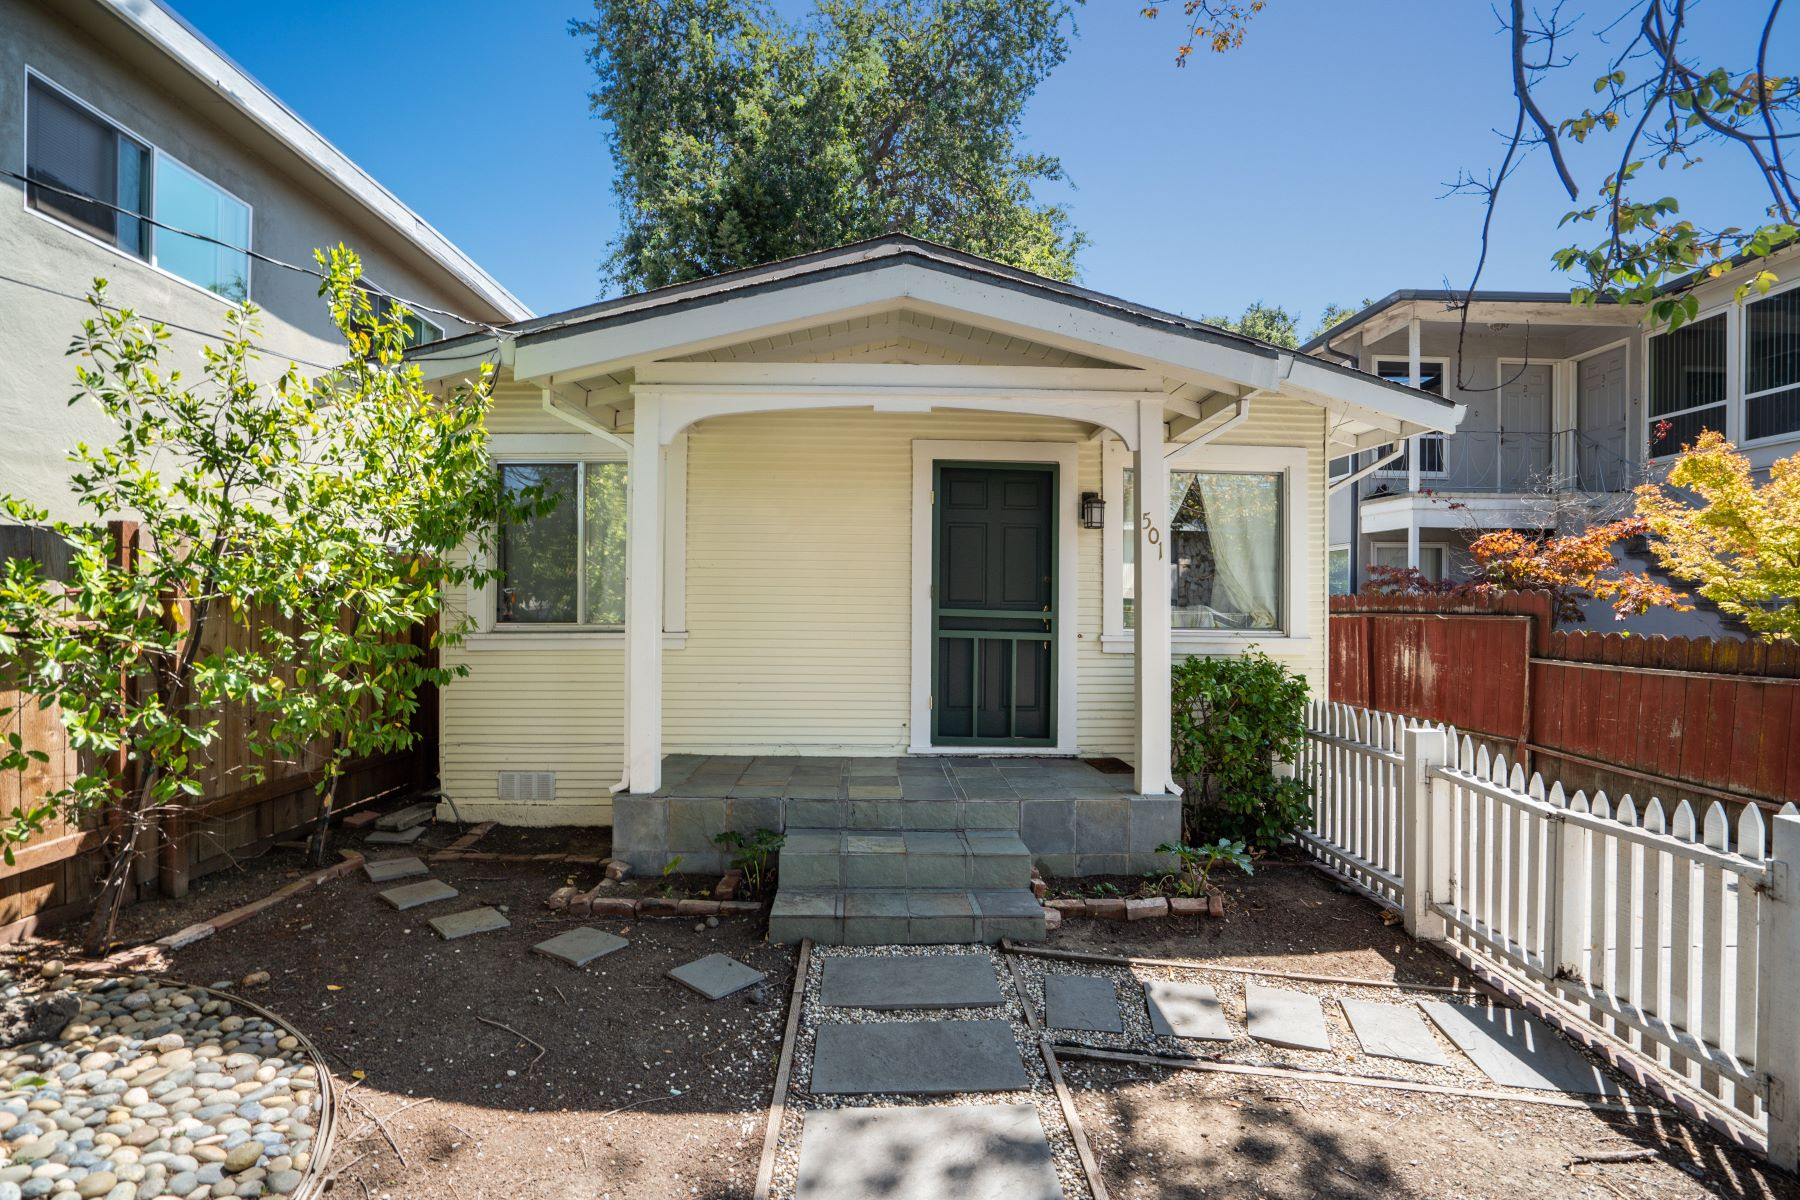 Single Family Homes for Active at Charming Storybook Home 501 Redwood Avenue Redwood City, California 94061 United States